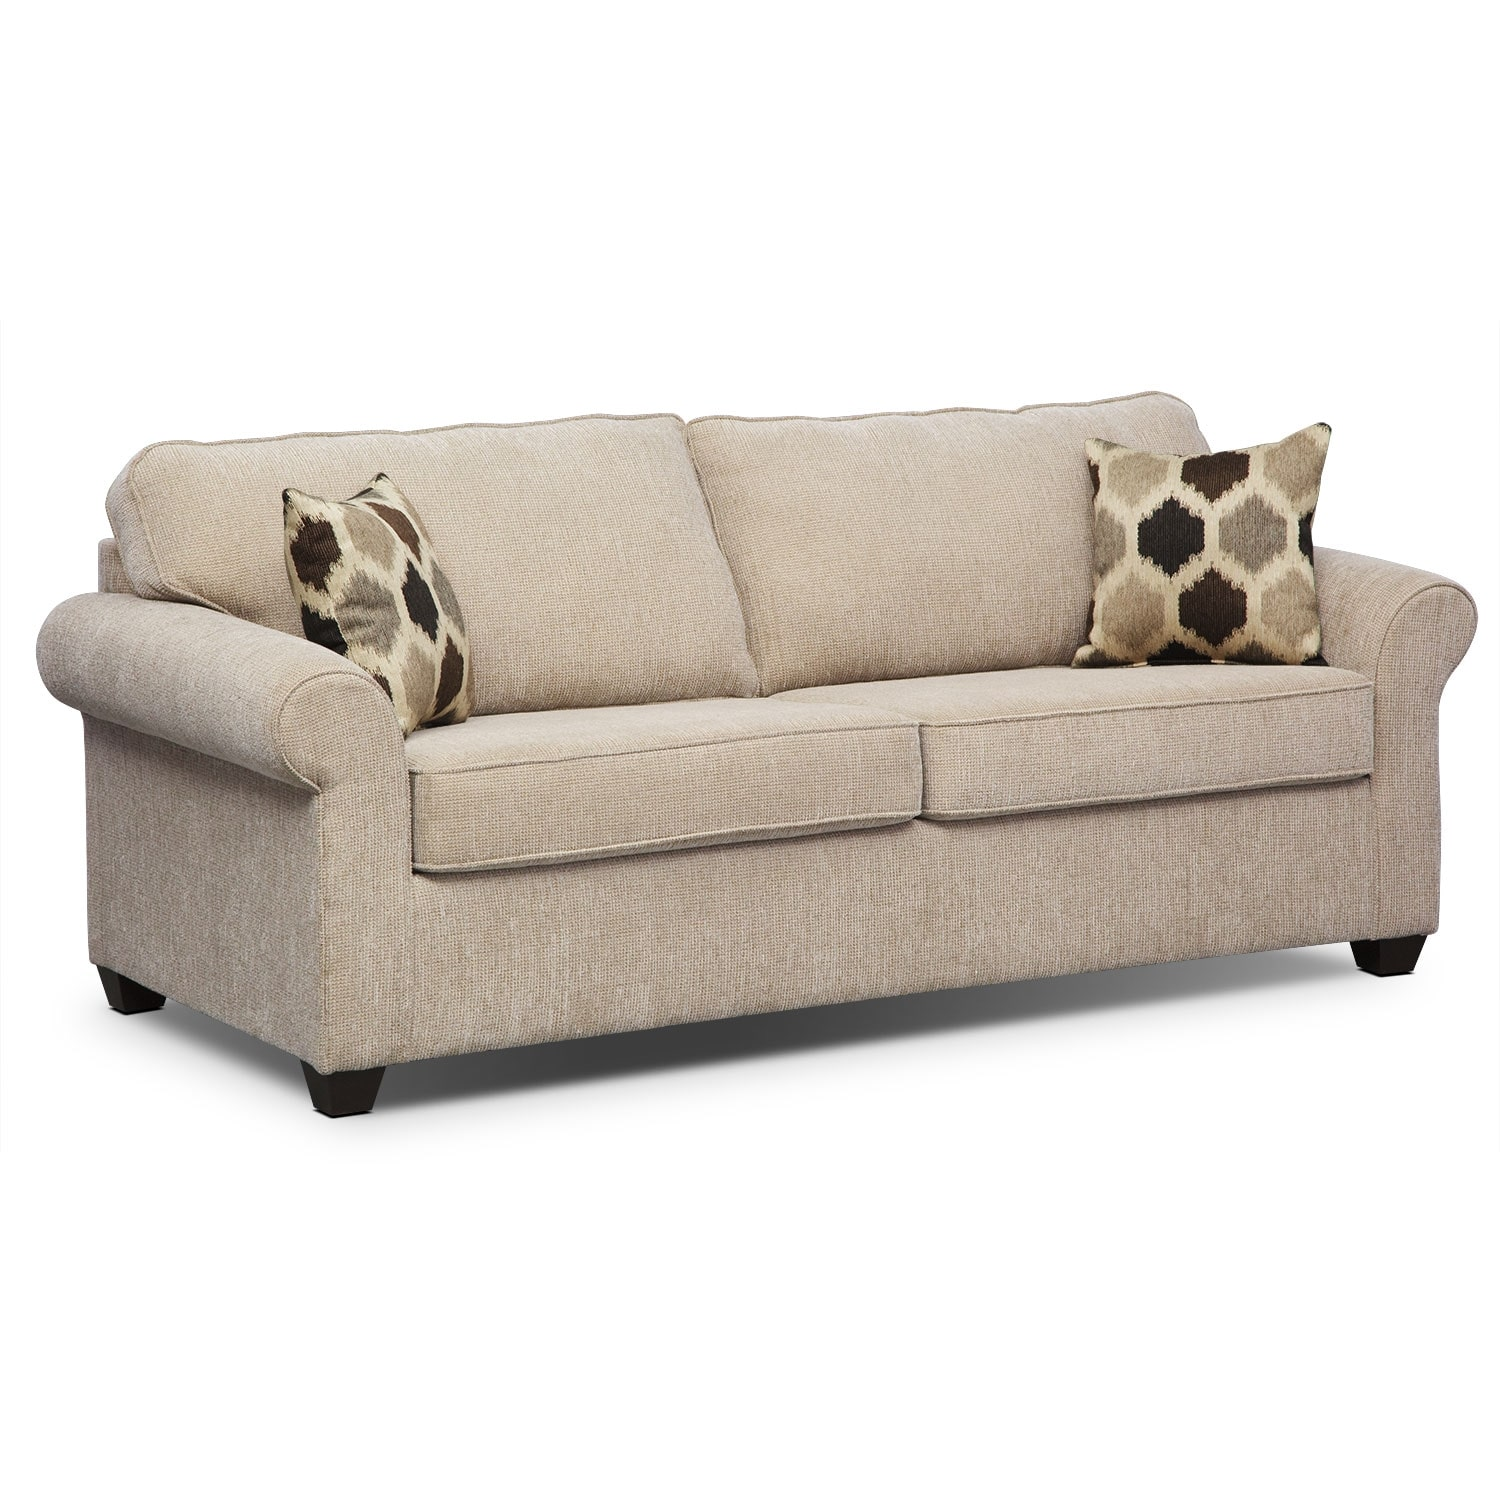 [Fletcher Queen Innerspring Sleeper Sofa]